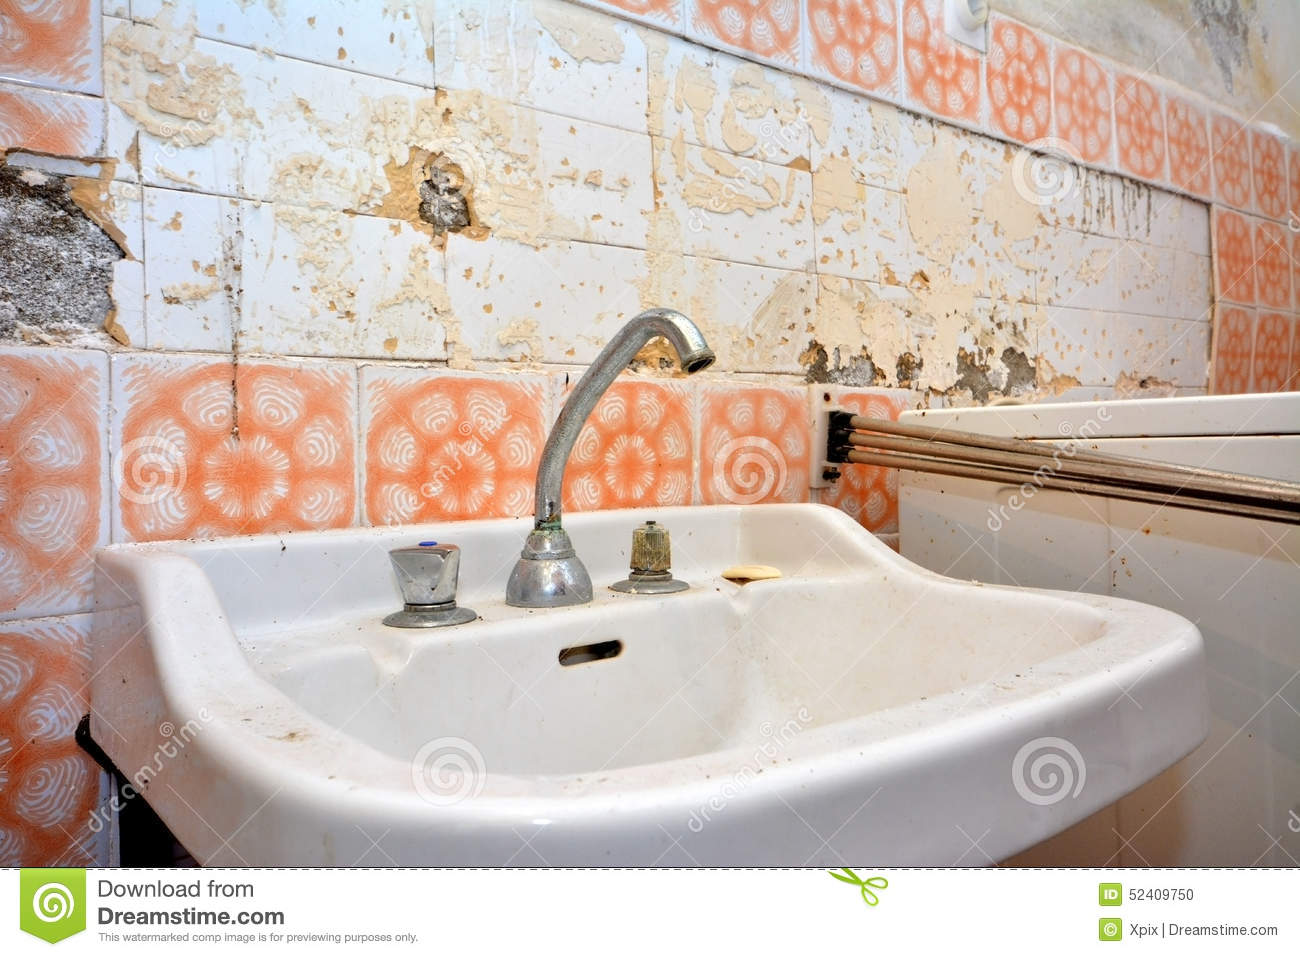 Old Lavatory In Destroyed Bathroom Stock Photo - Image of retro ...